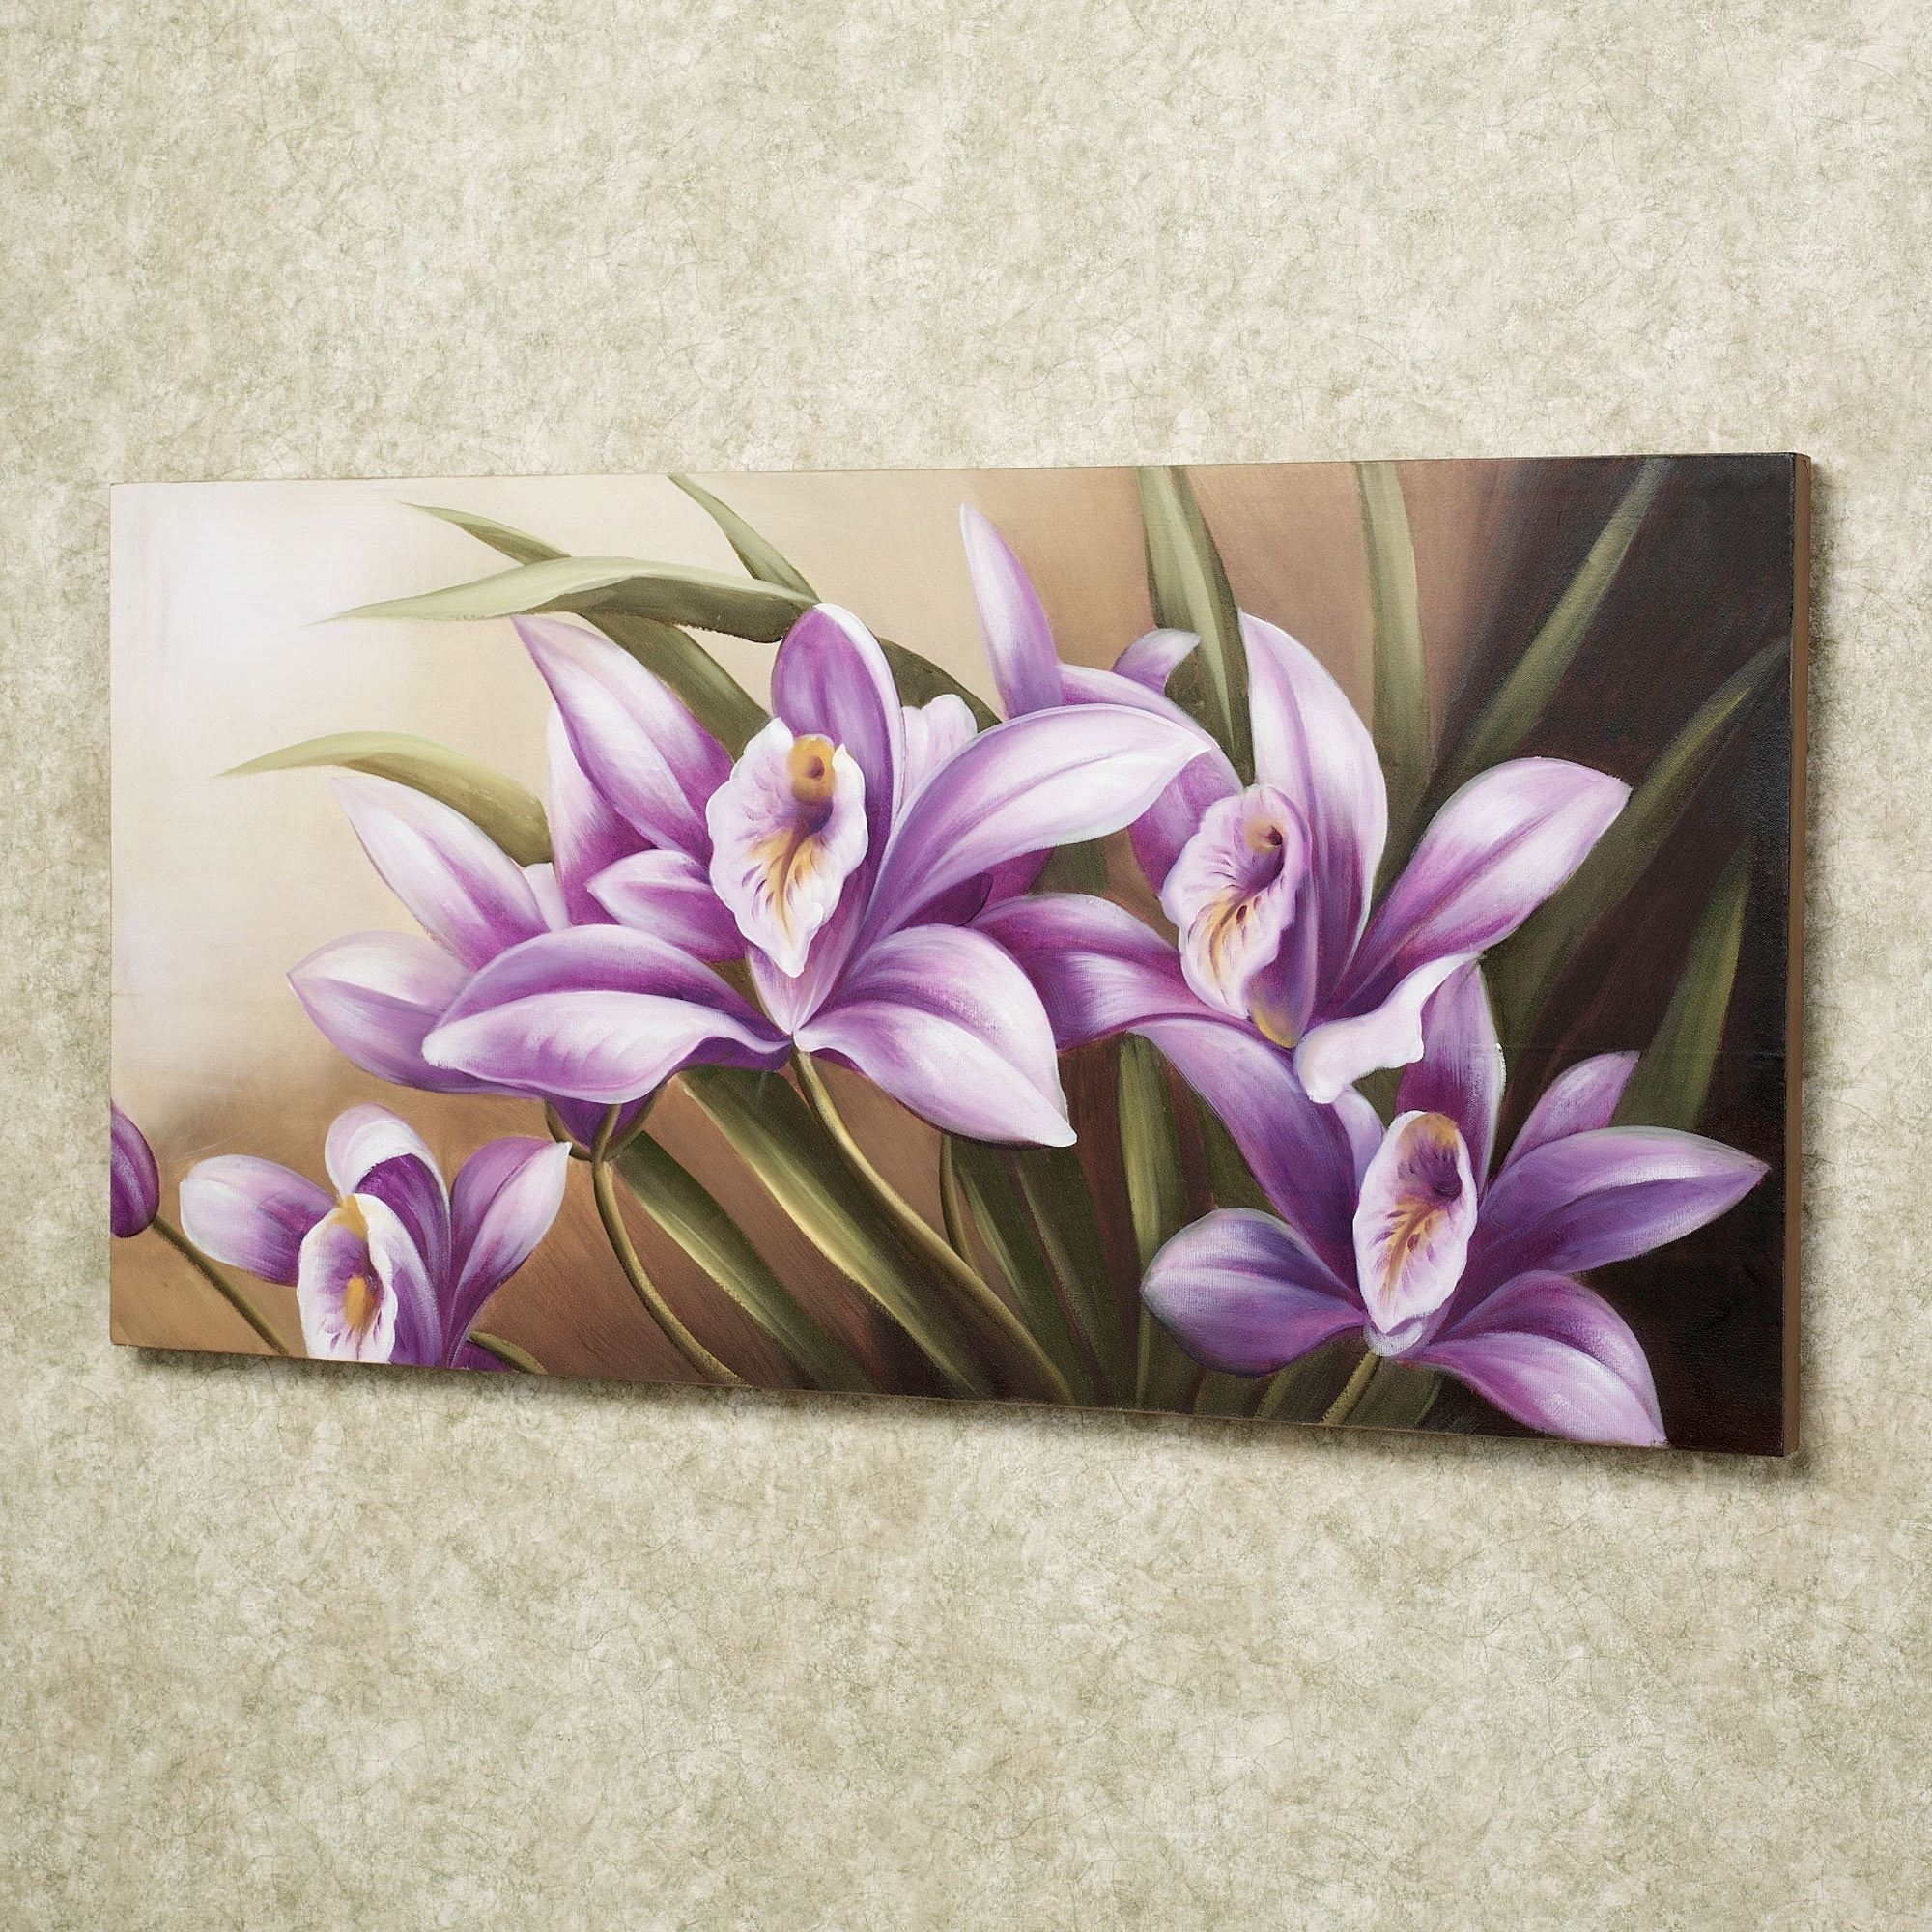 Most Recent Orchid Canvas Wall Art With Wild Orchid Handpainted Floral Canvas Wall Art (View 4 of 15)